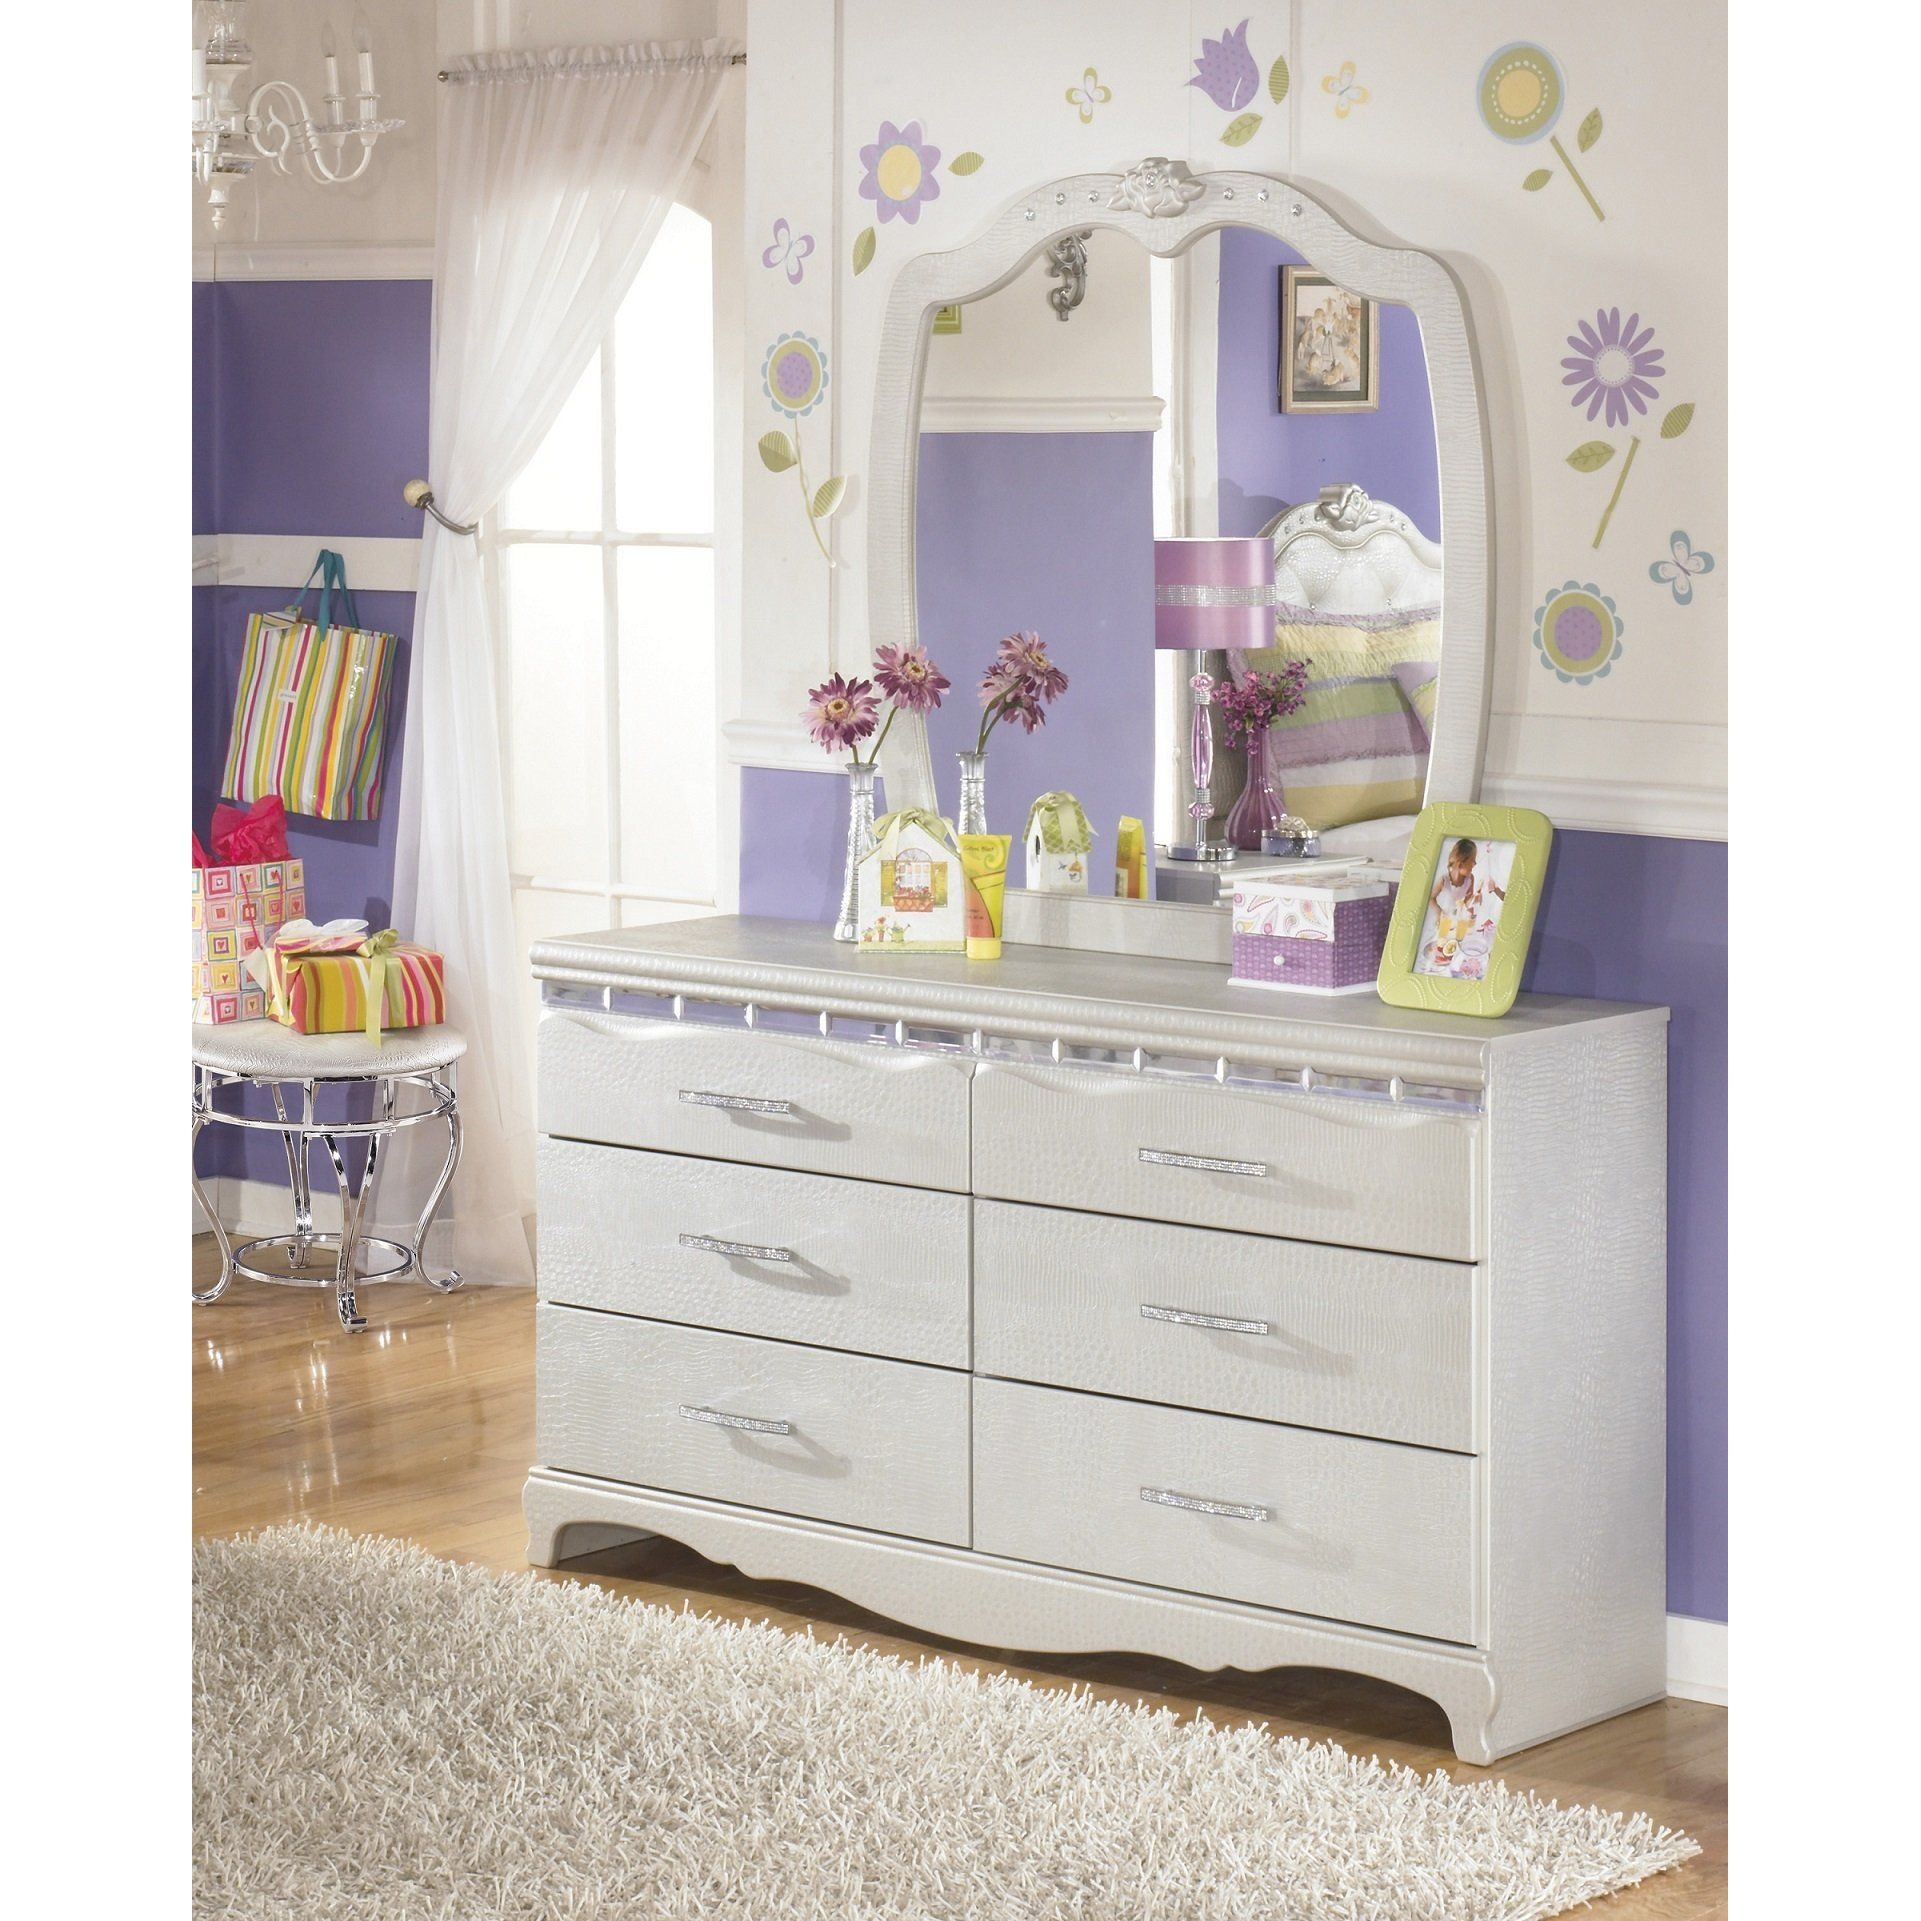 Furnituremaxx Julia Girl S Bedroom Silver And Pear Dresser Mirror